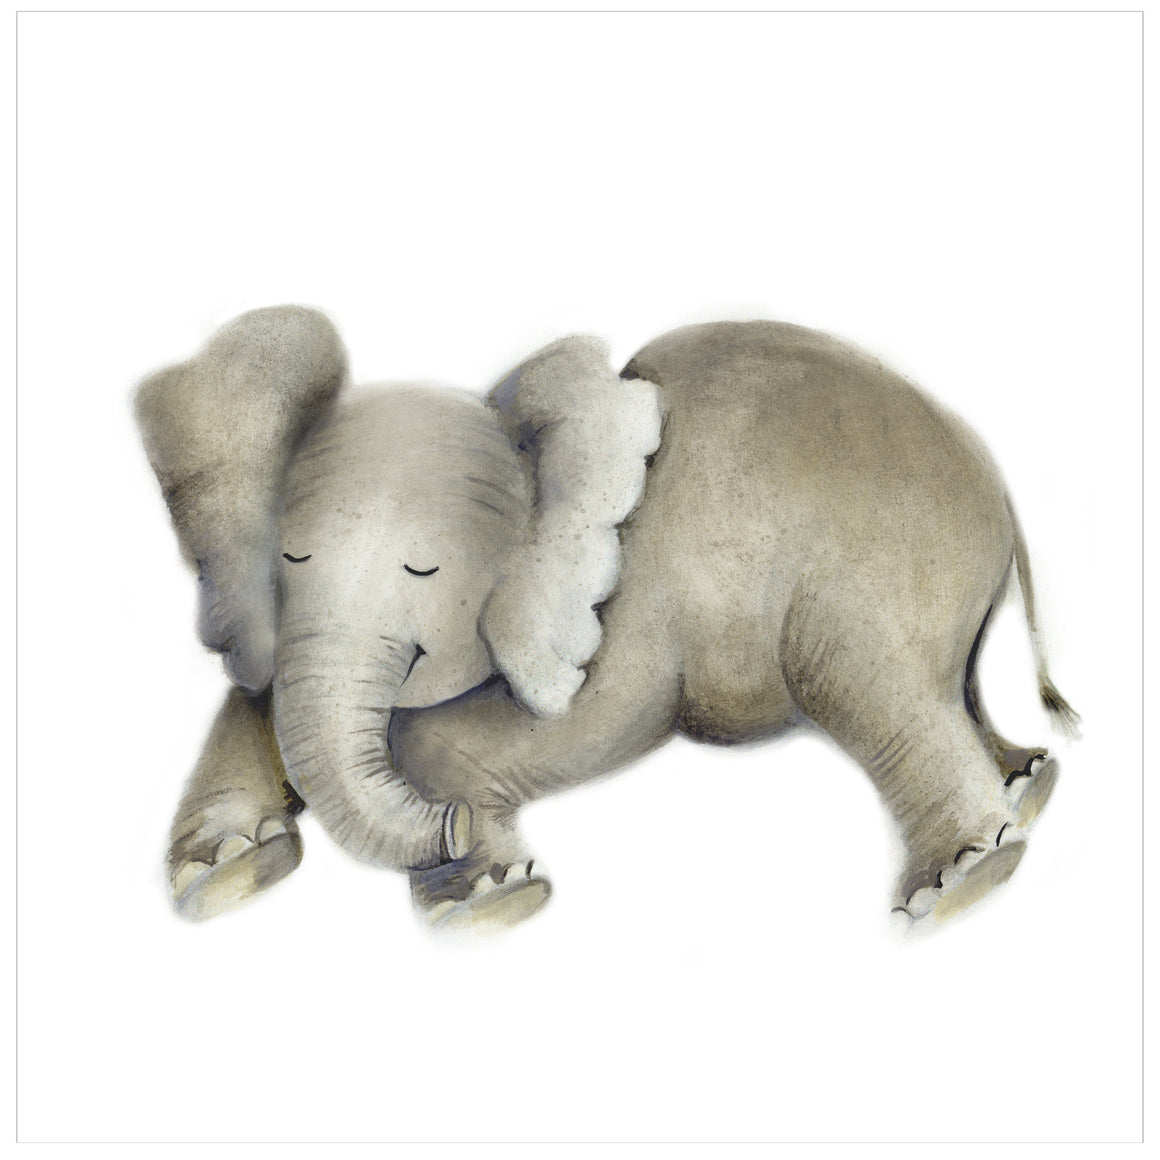 Sleeping baby elephant print